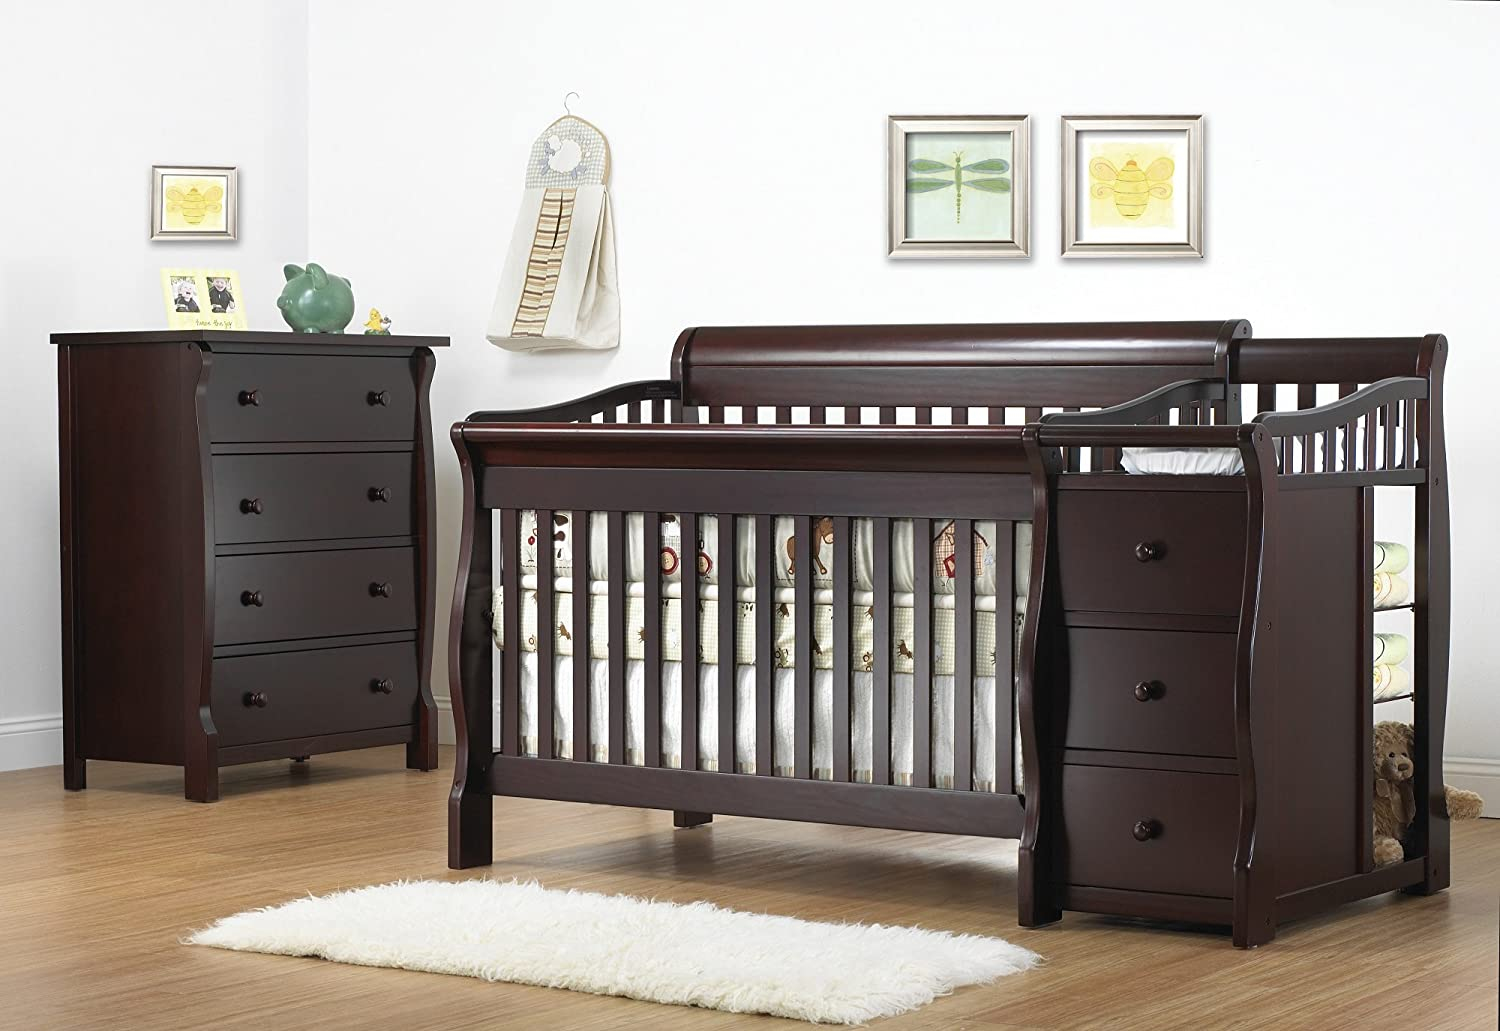 Amazoncom Sorelle Tuscany 4 In 1 Convertible Crib And Changer Set